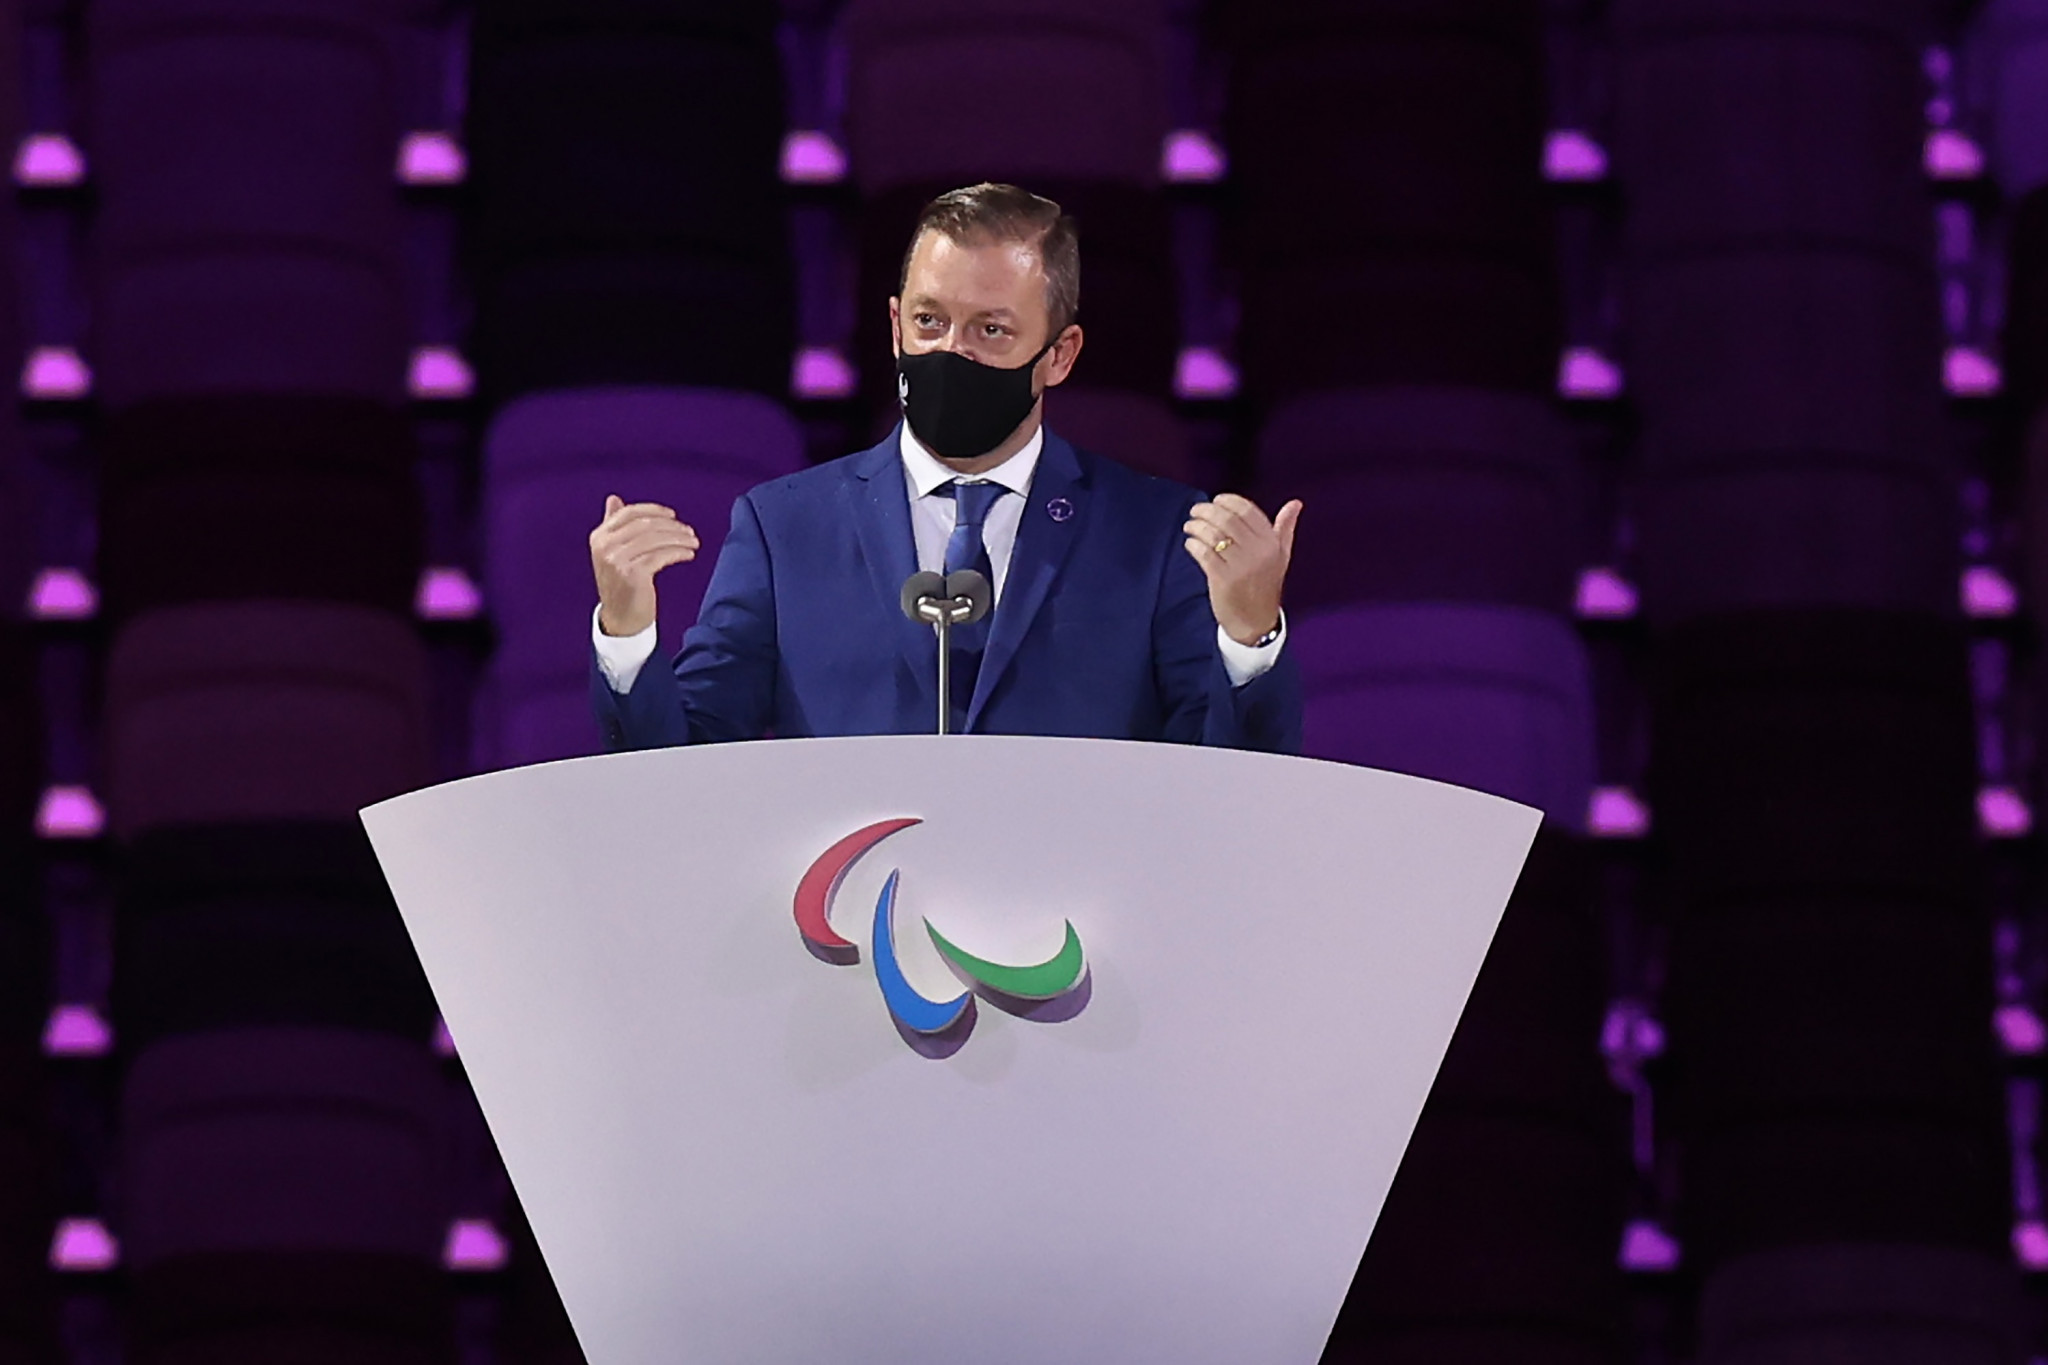 Andrew Parsons is to stand for a second term as IPC President unopposed ©Getty Images